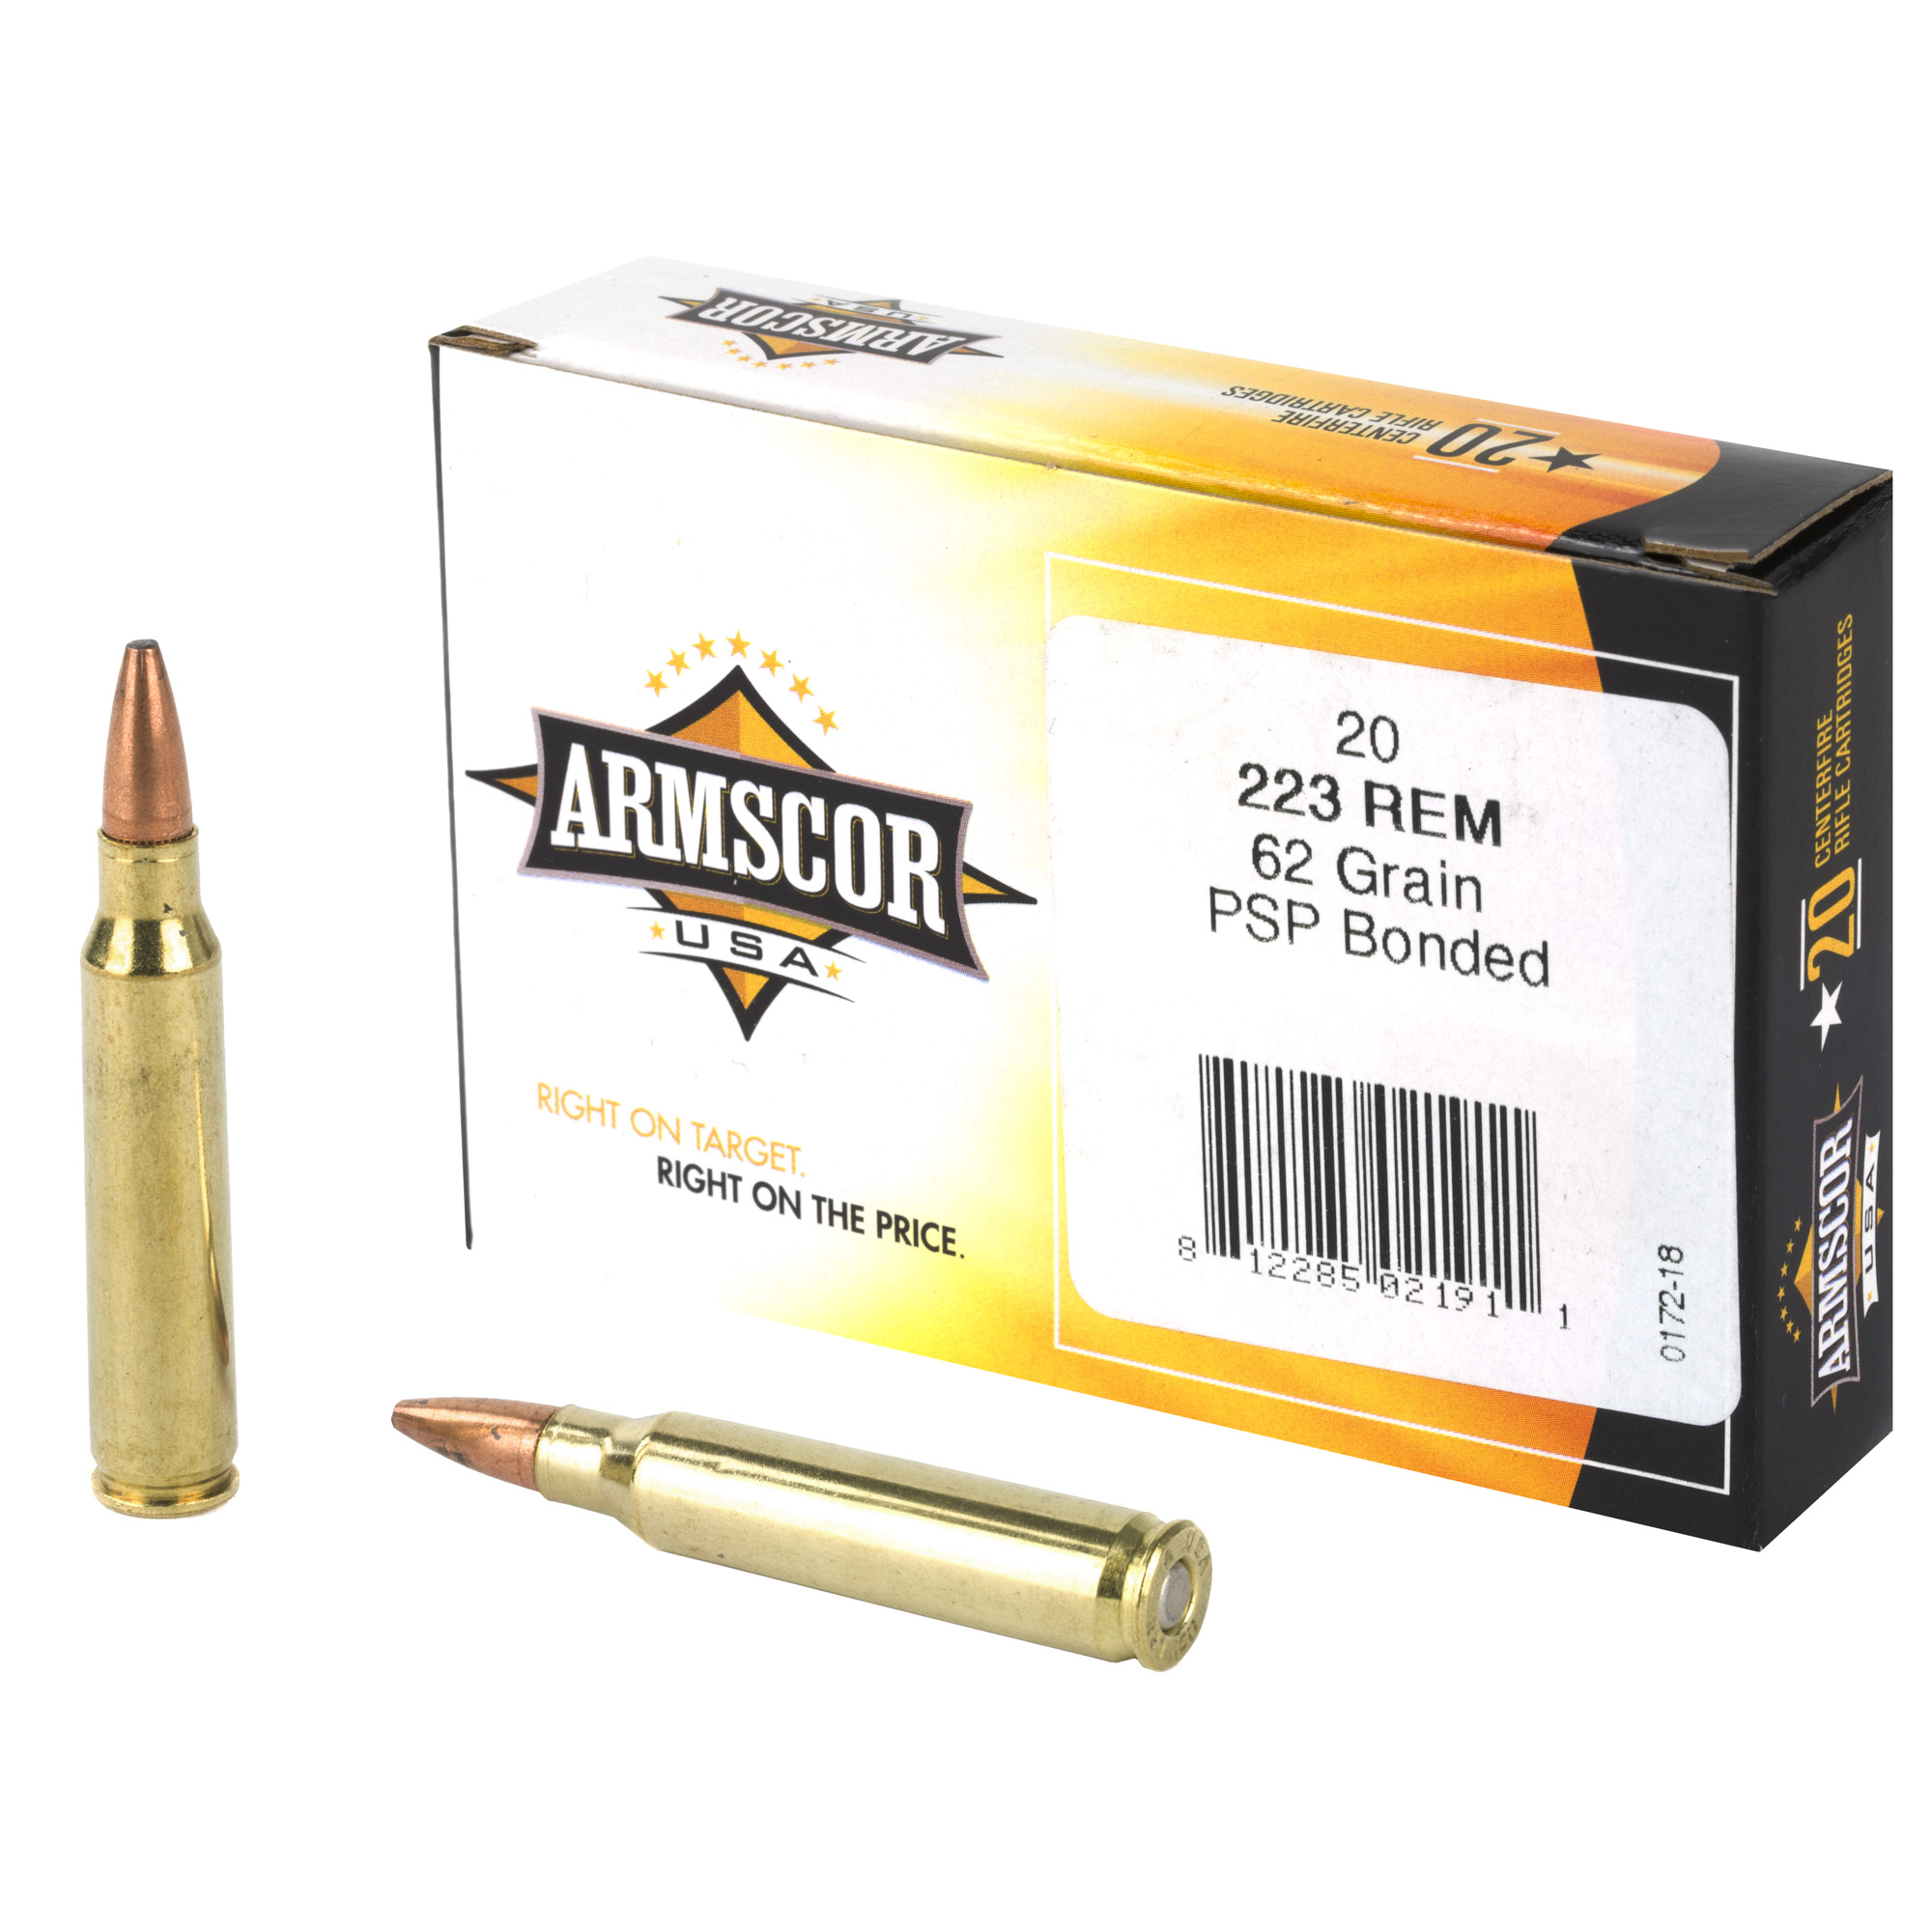 Armscor 223rem 62gr Psp Bond 20/1000